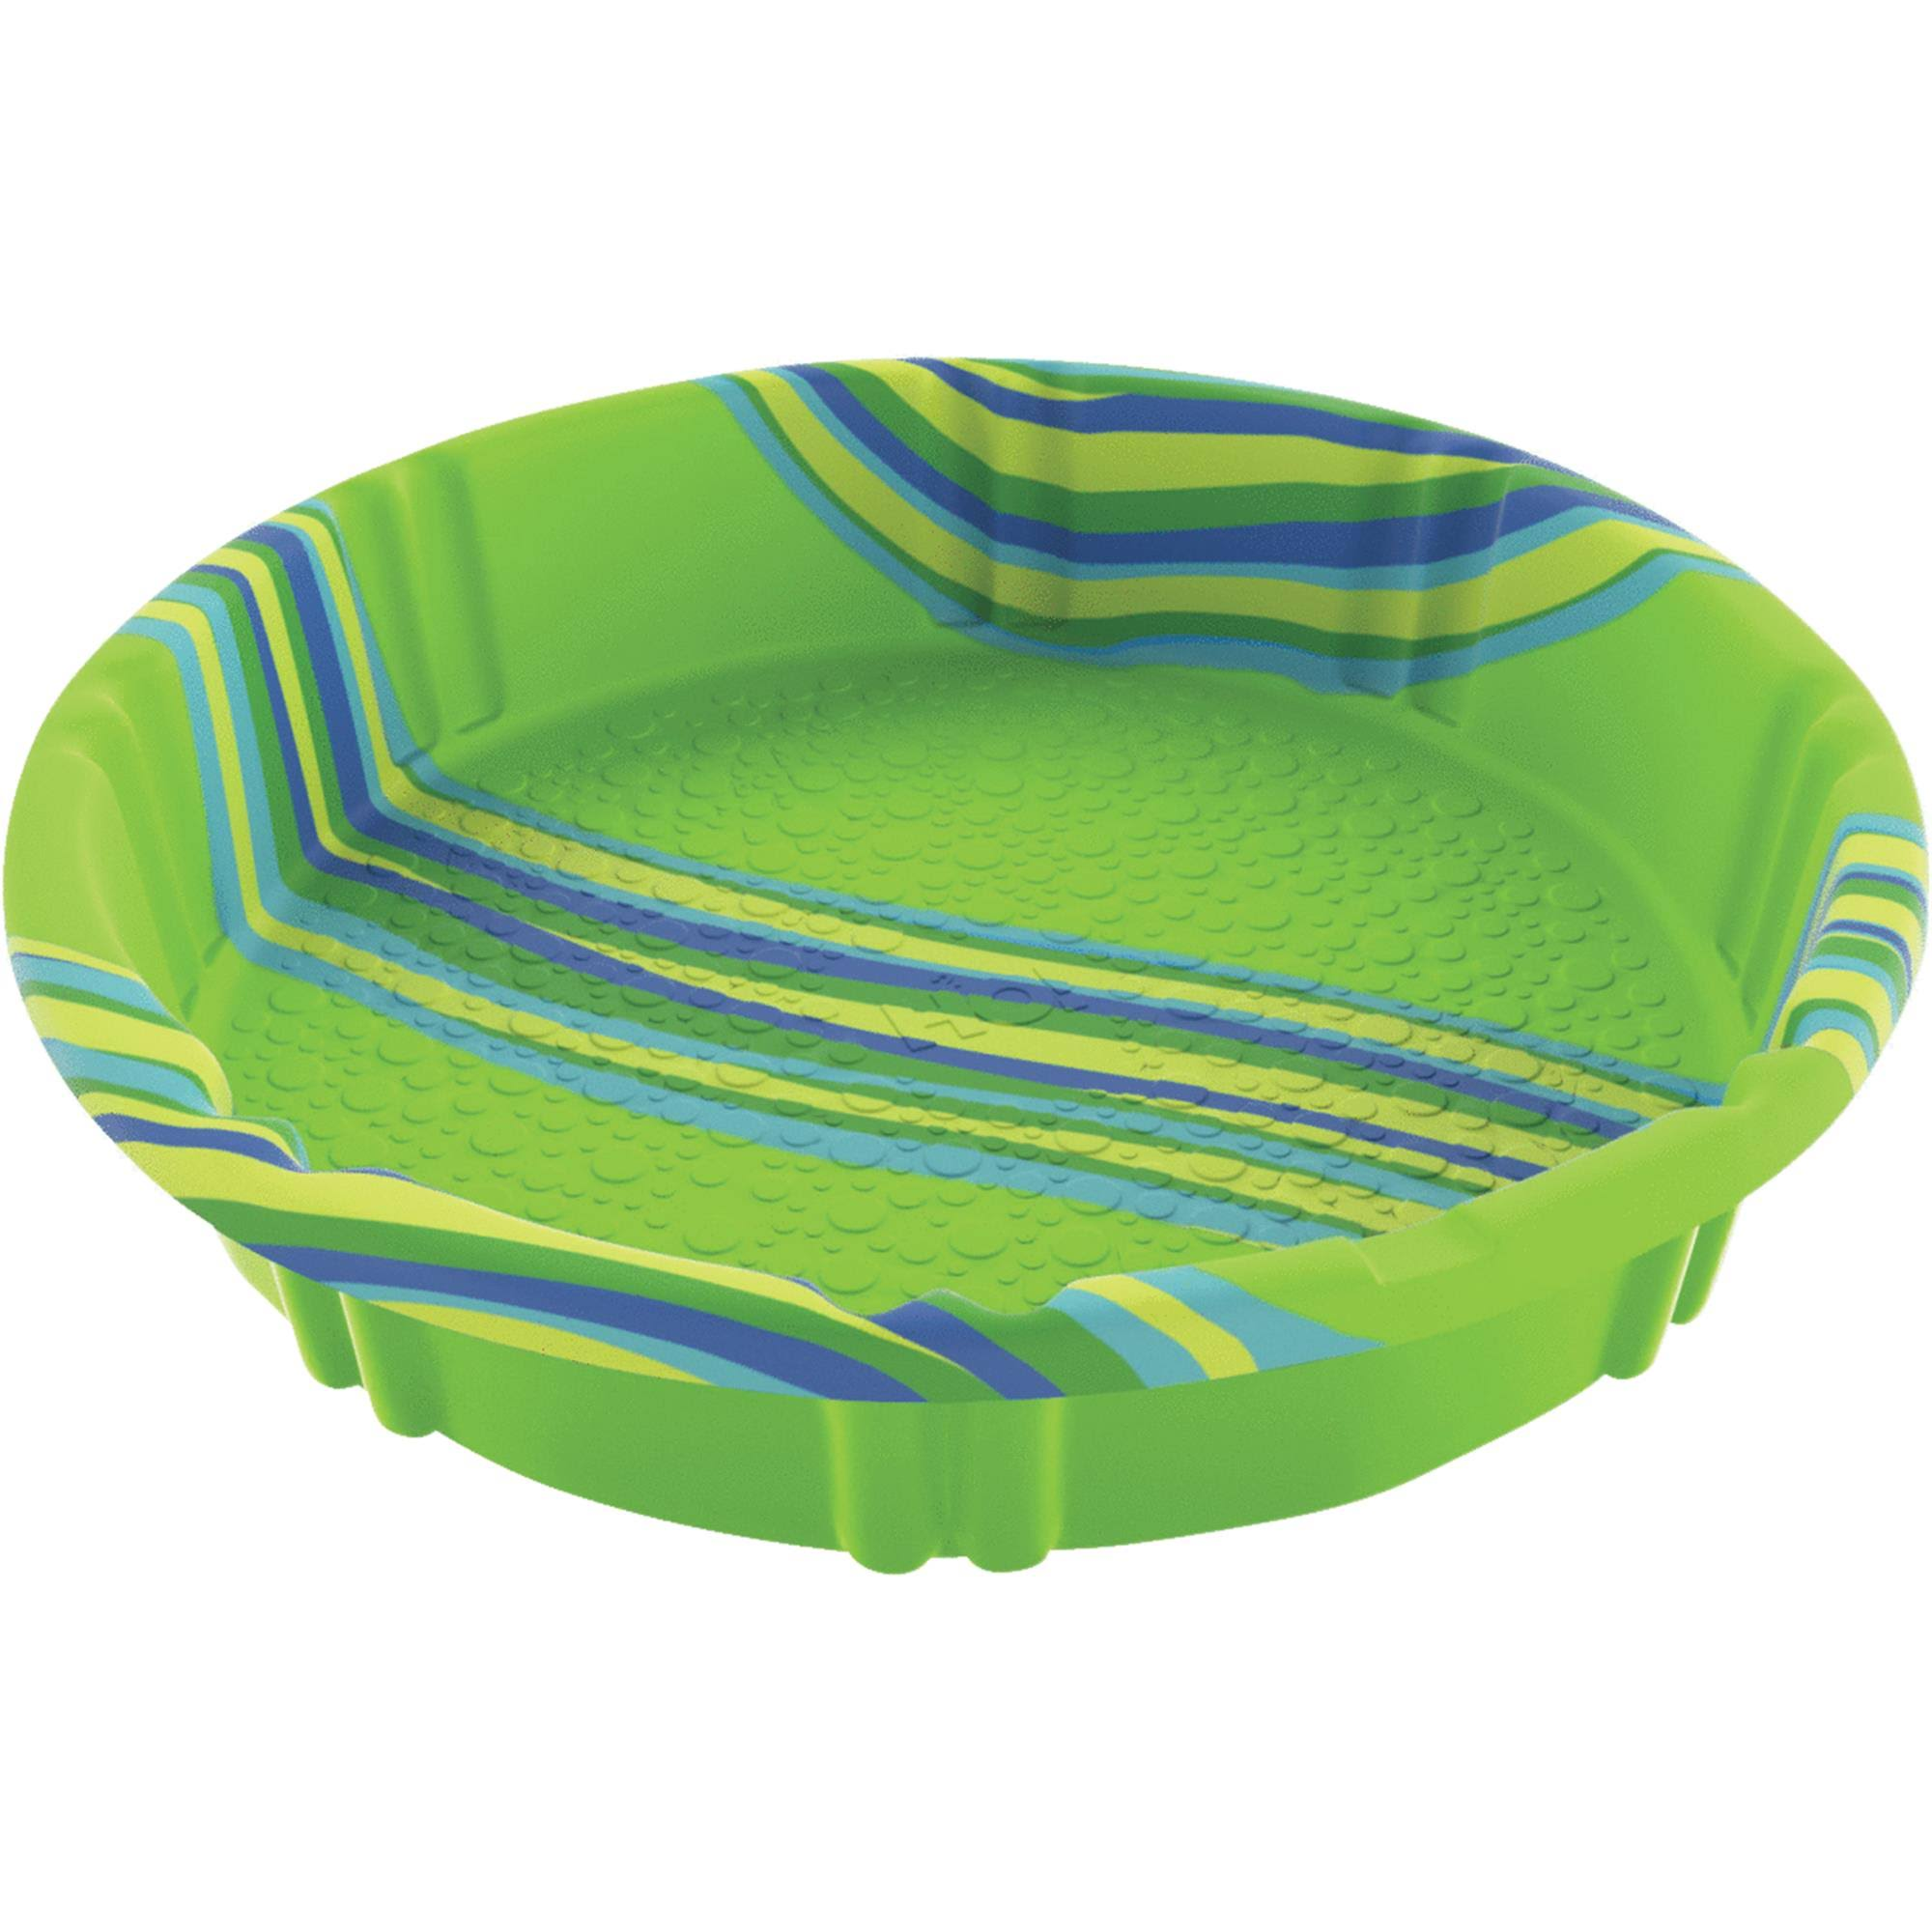 Gracious Living H2O Econo 46 in. Pool